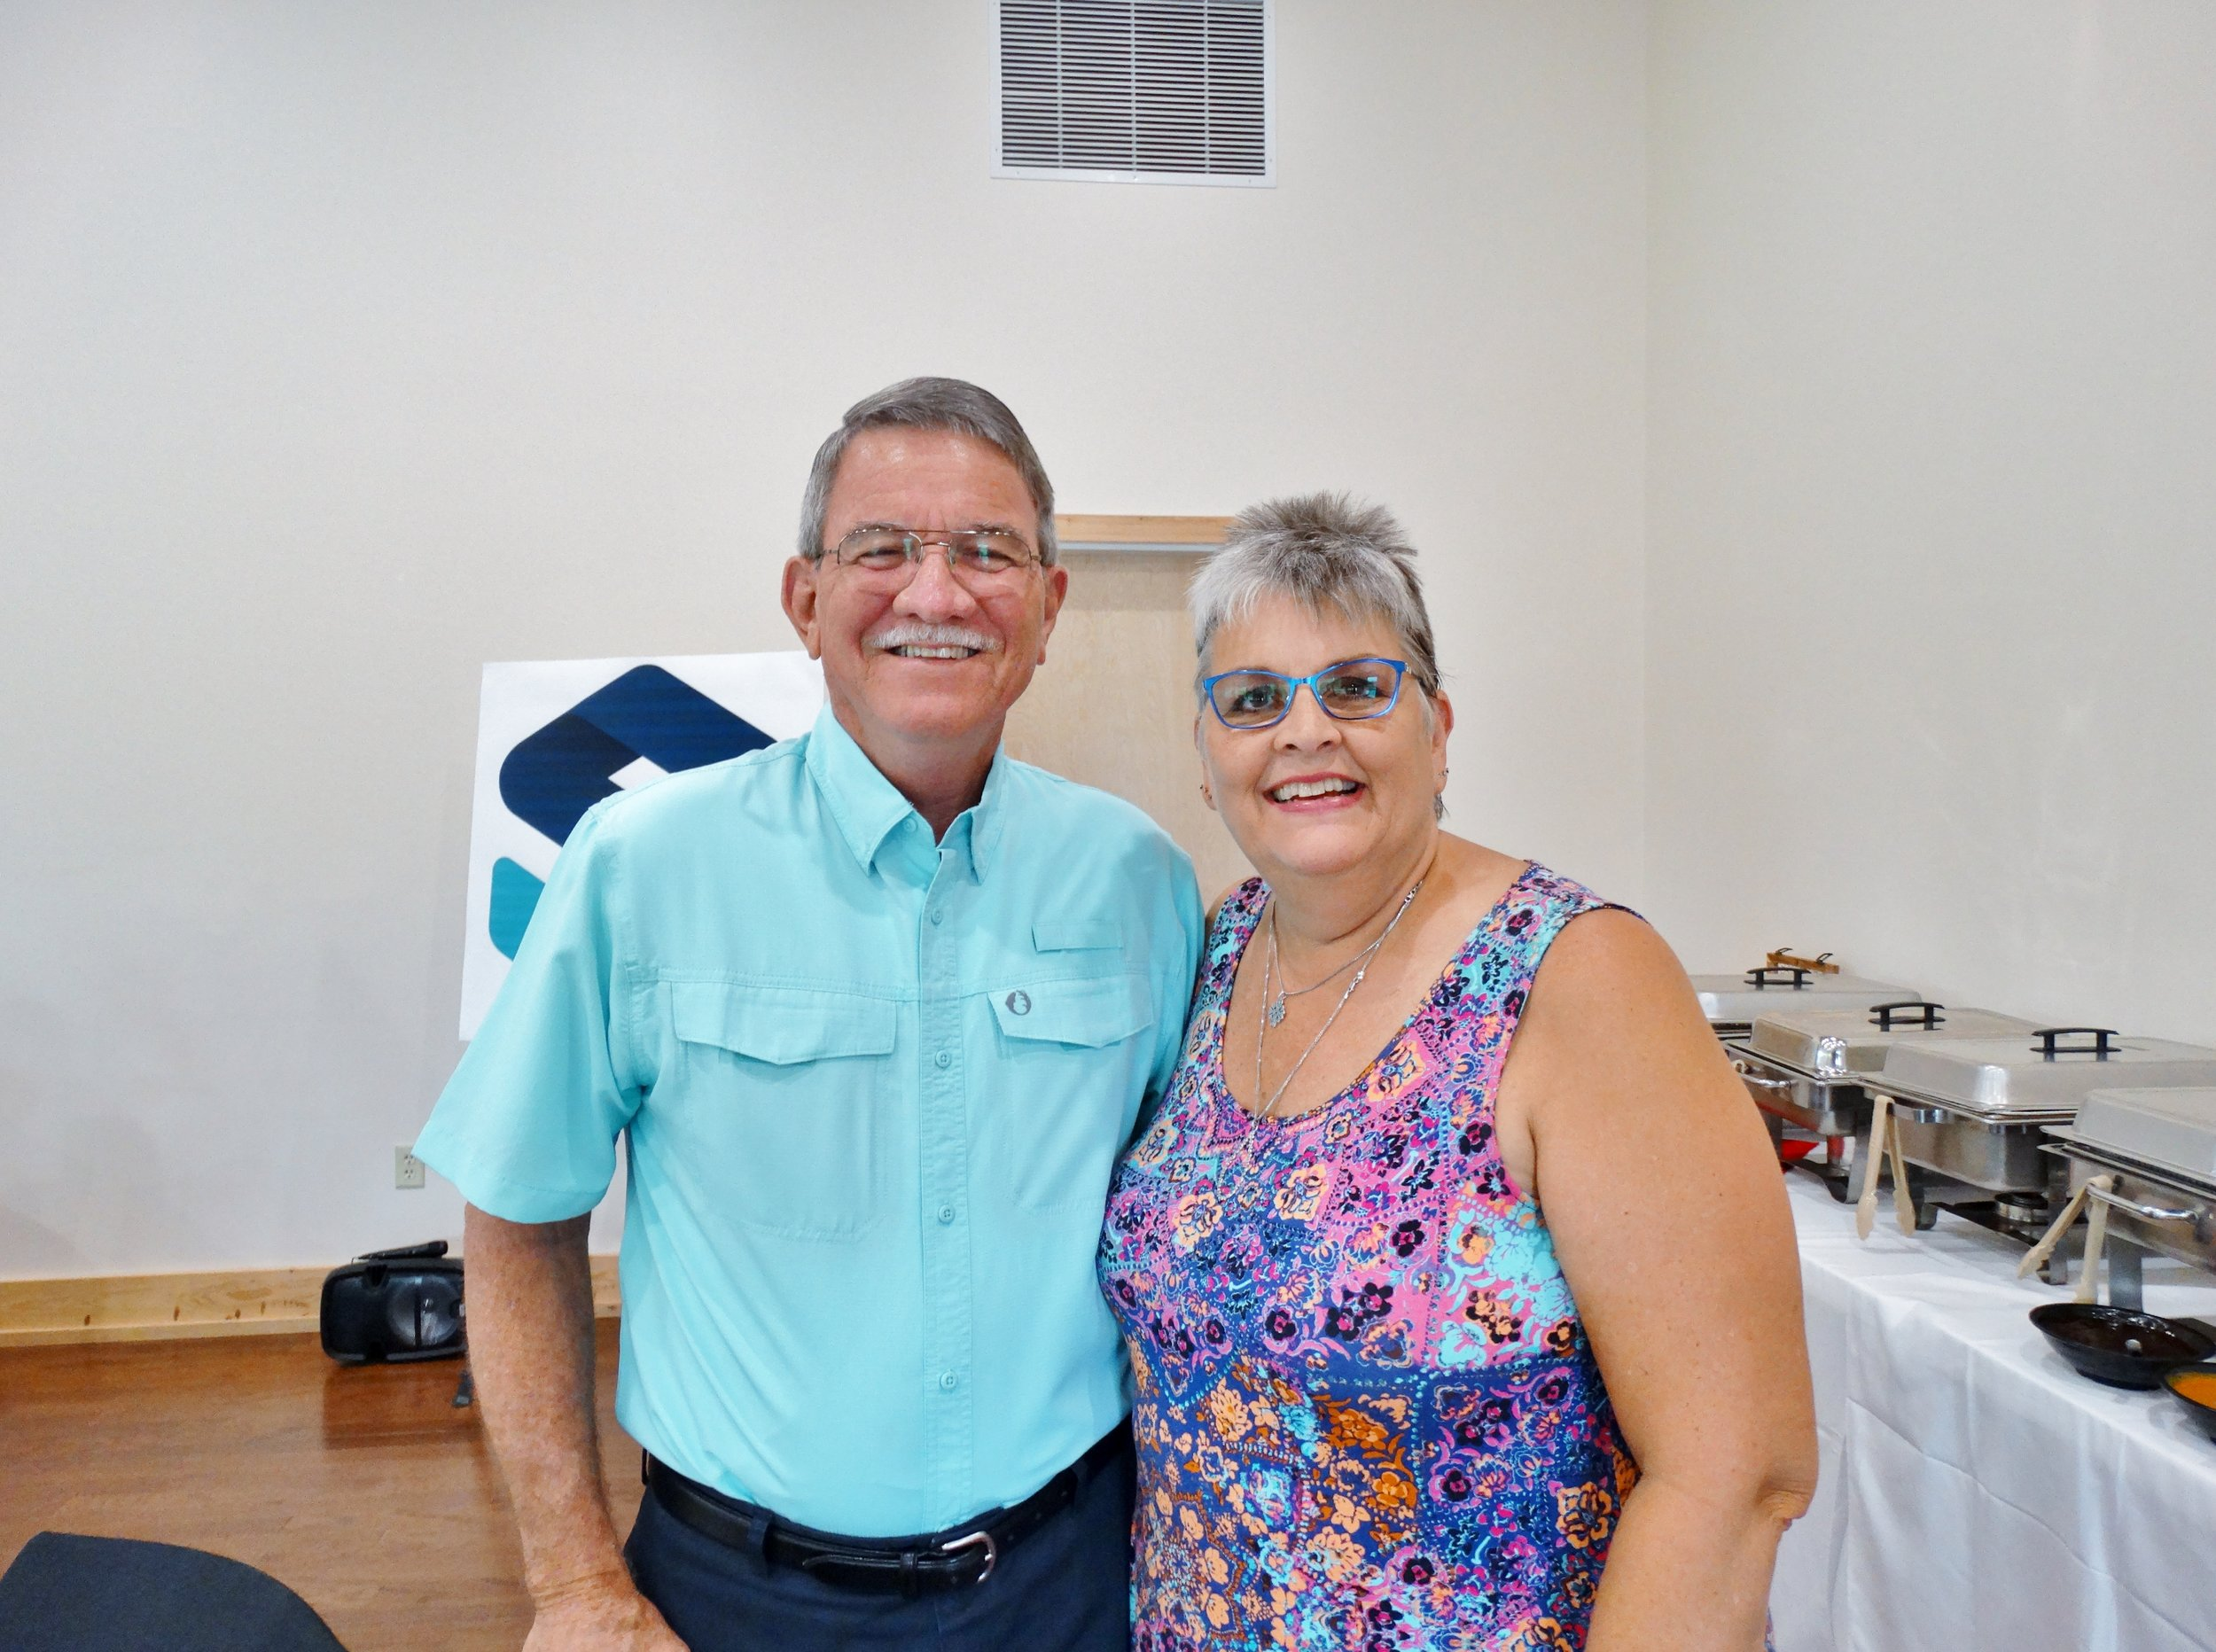 RETIREMENT PARTY FOR MRS. KATHY POWELL - DEPUTY EXECUTIVE DIRECTOR & CFOAugust 16, 2019